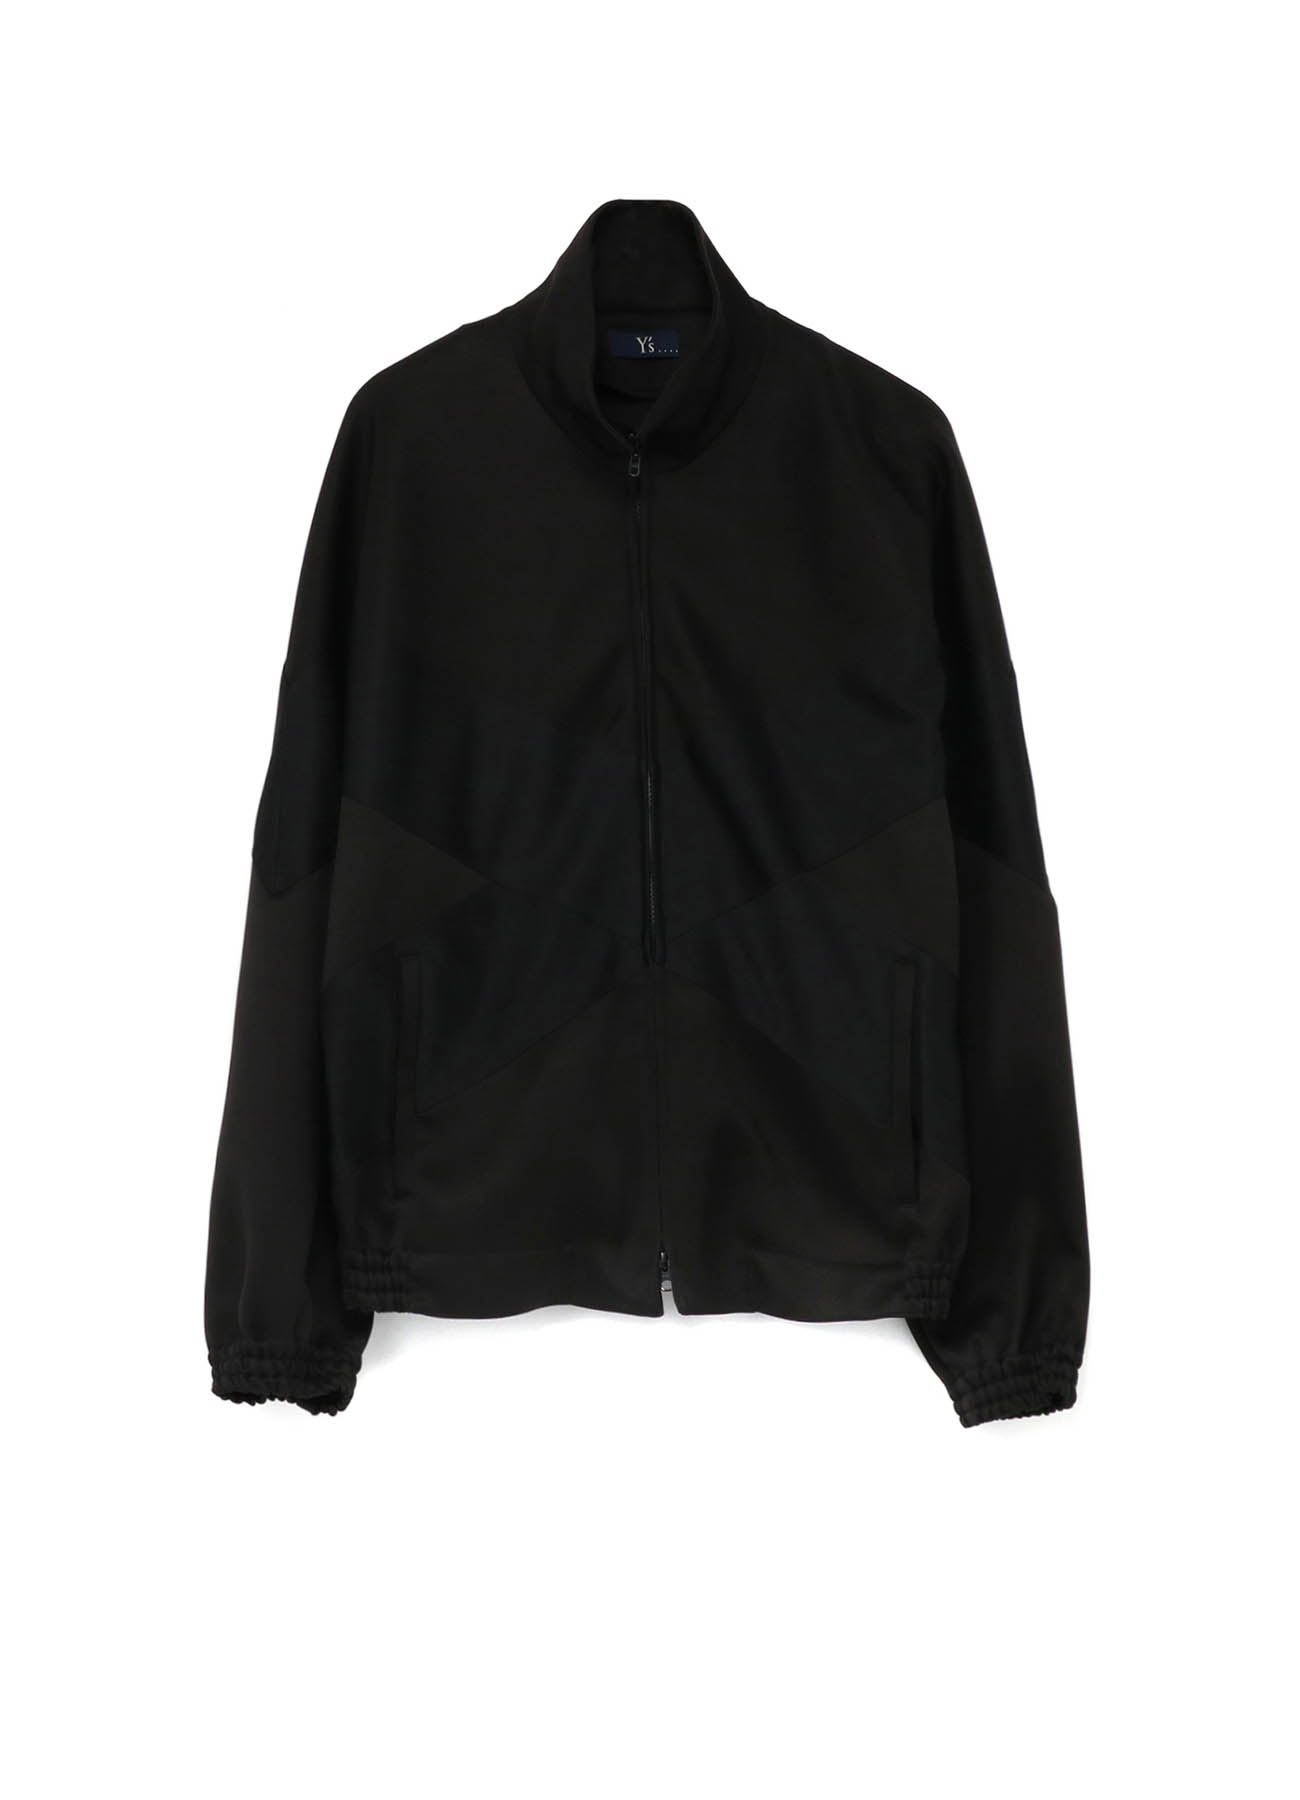 POLYESTER 3 LAYERS DOBBY WATER REPELLENT JERSEY BLOUSON